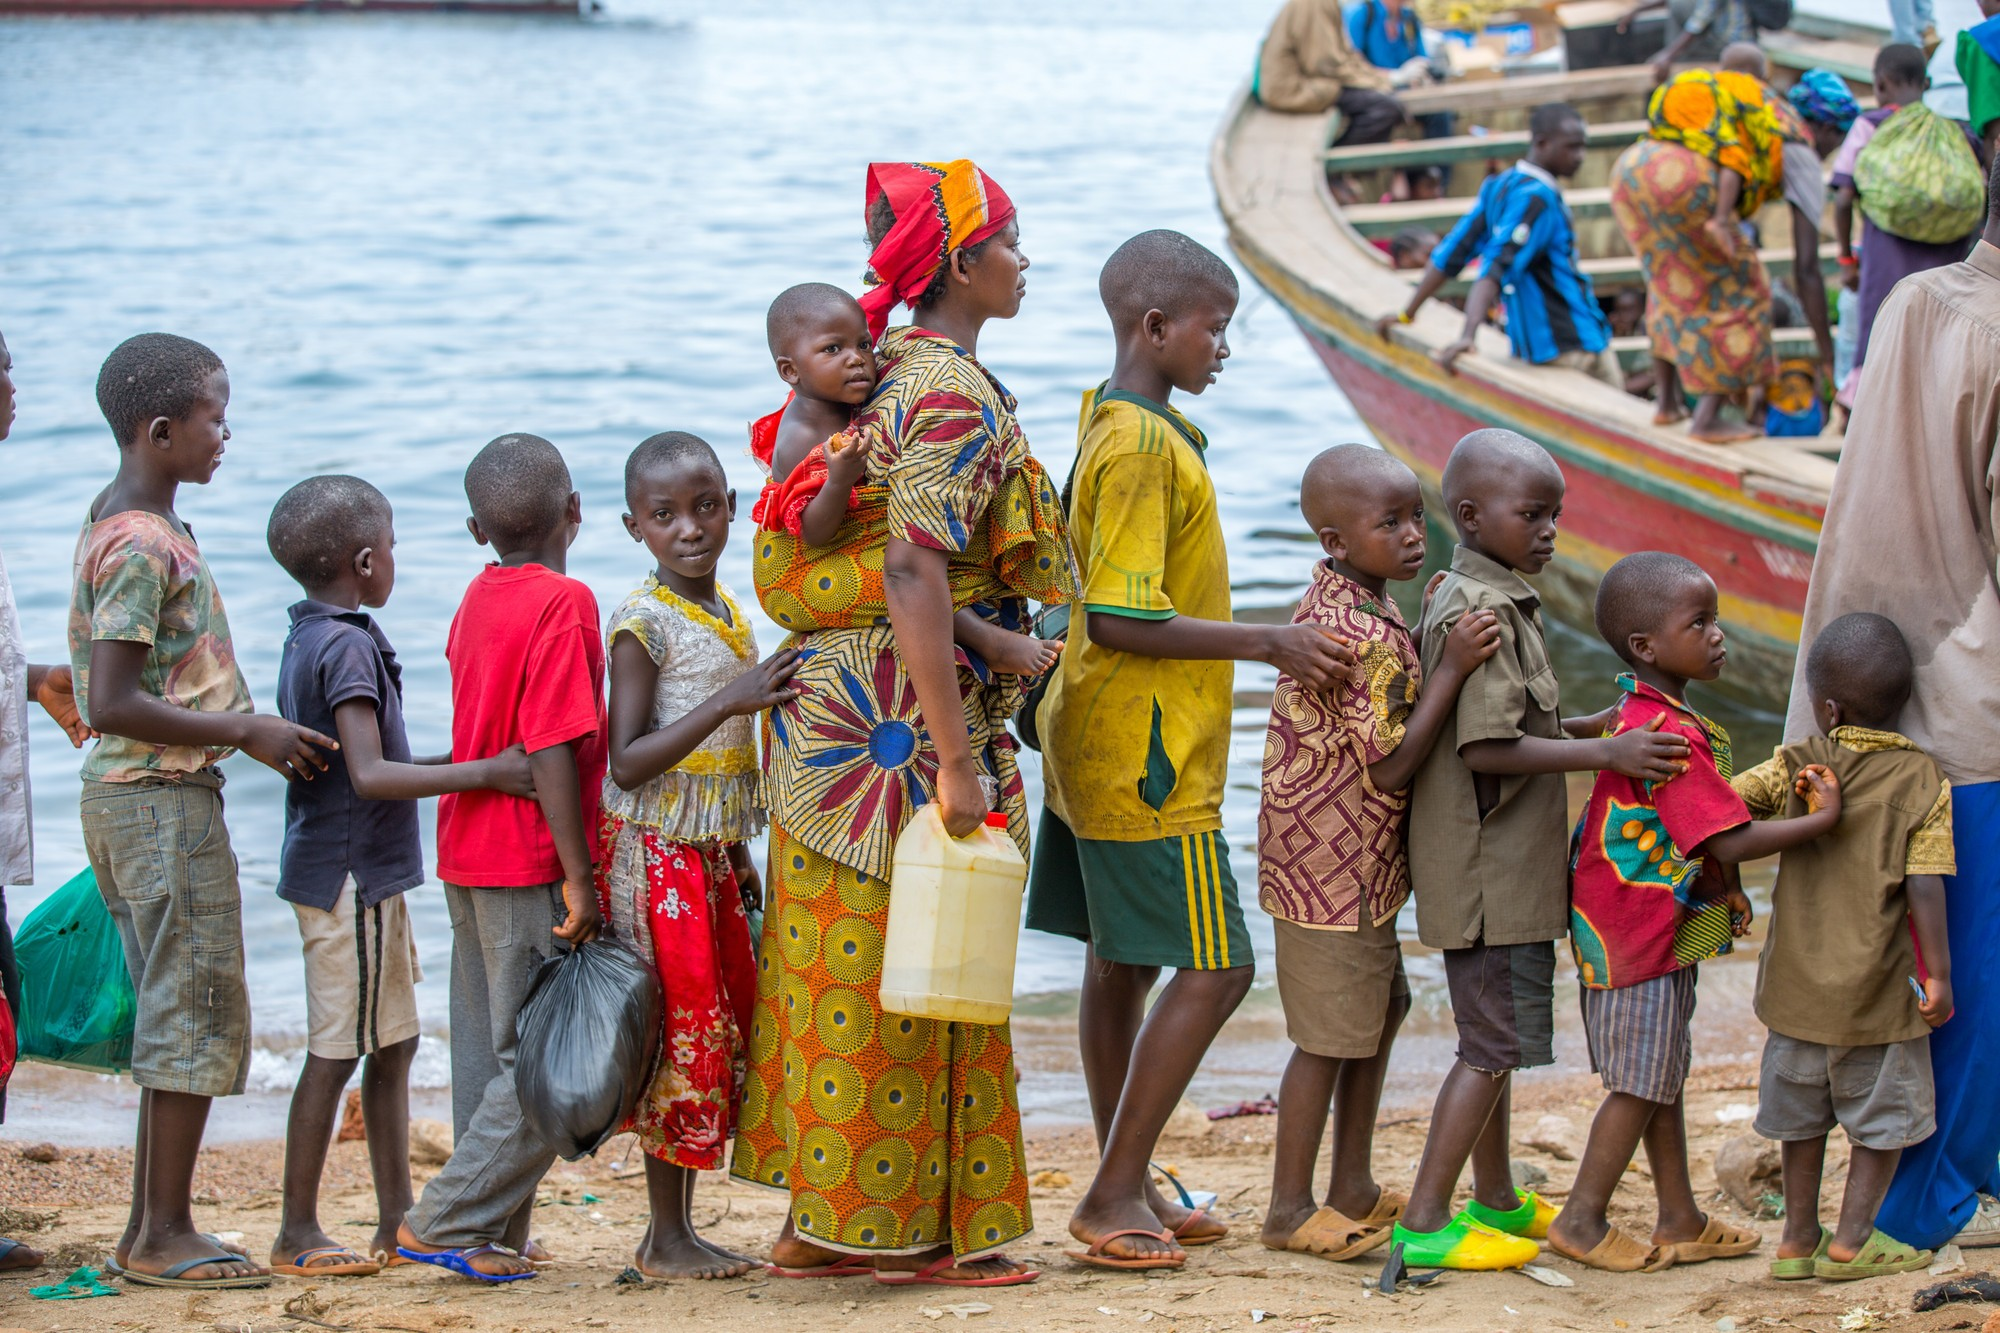 Children queue to board boat in the tiny village of Kagunga